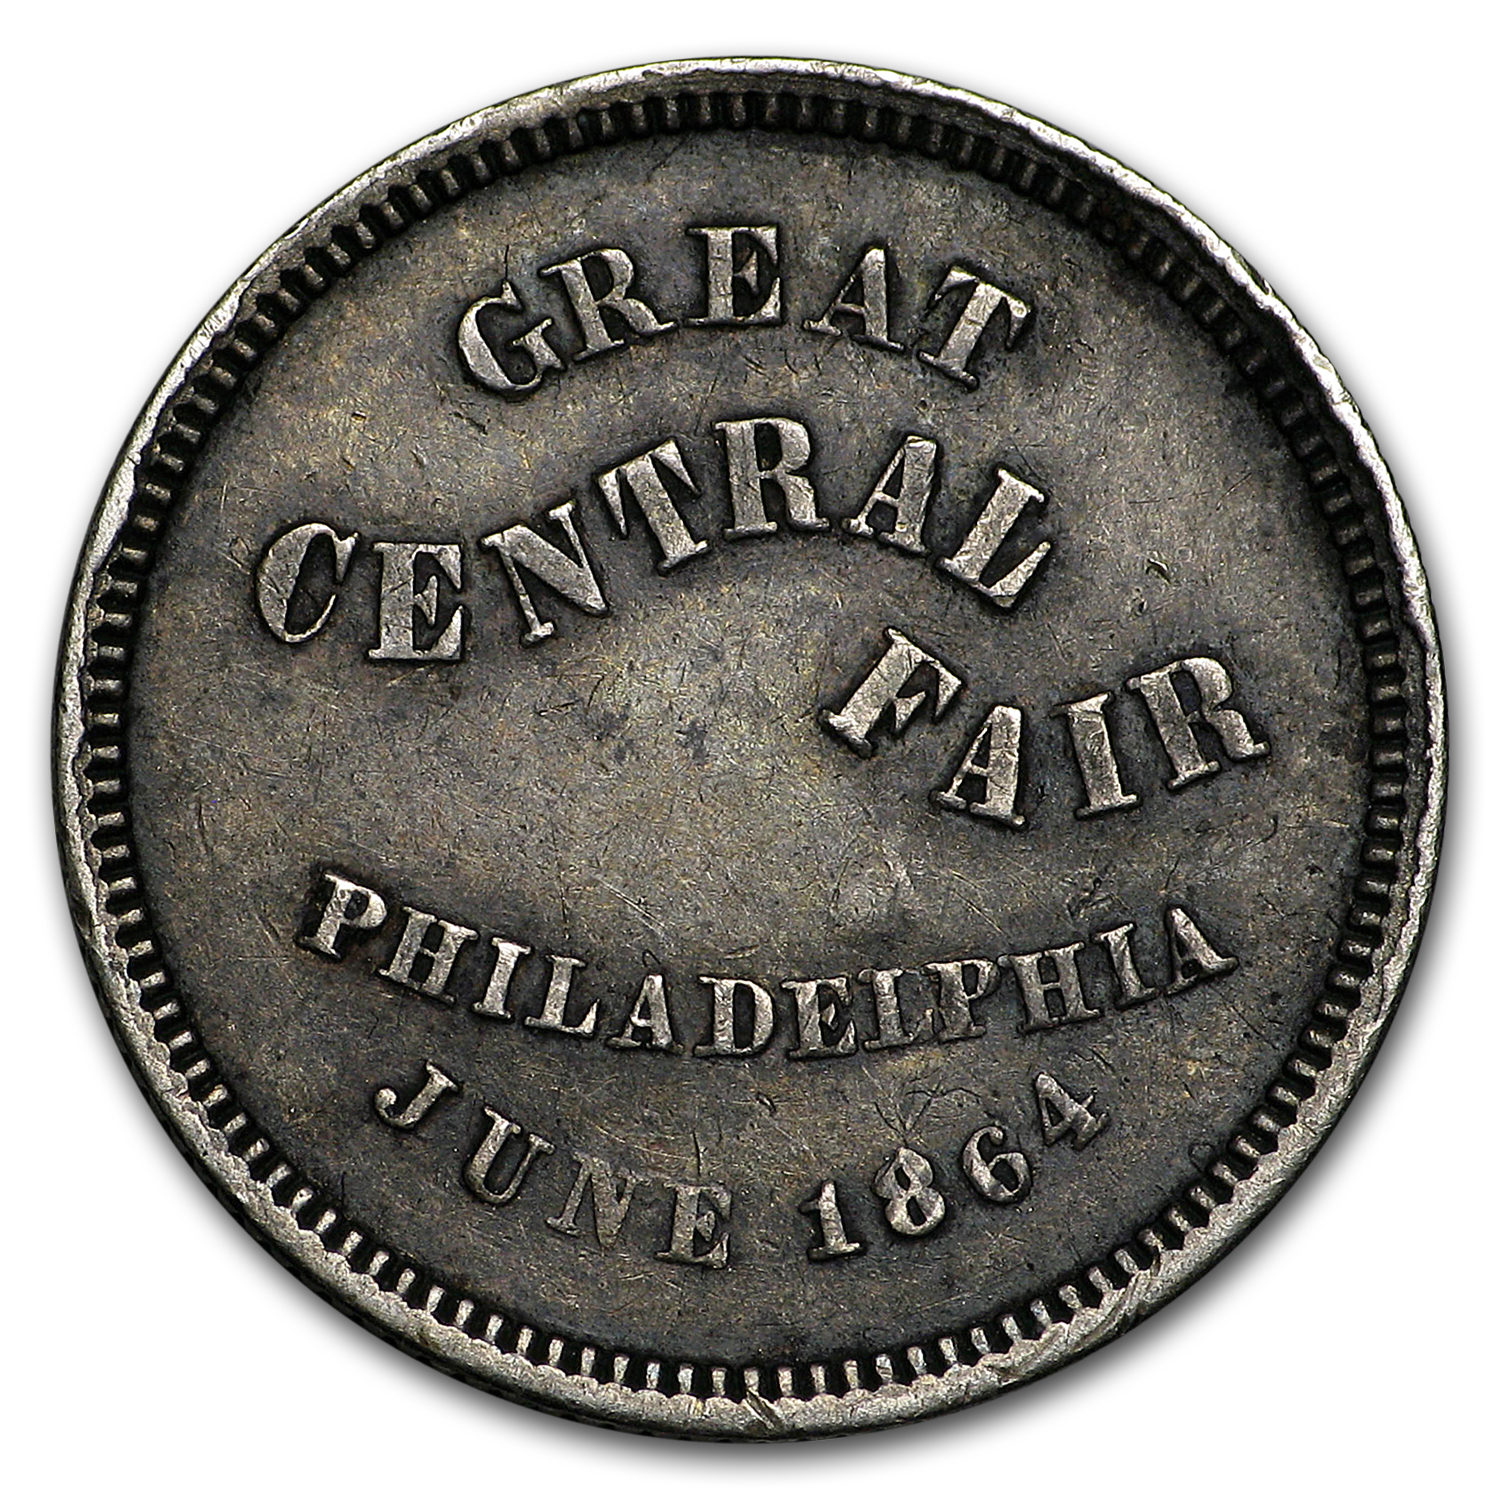 1864 Civil War Great Central Fair Token